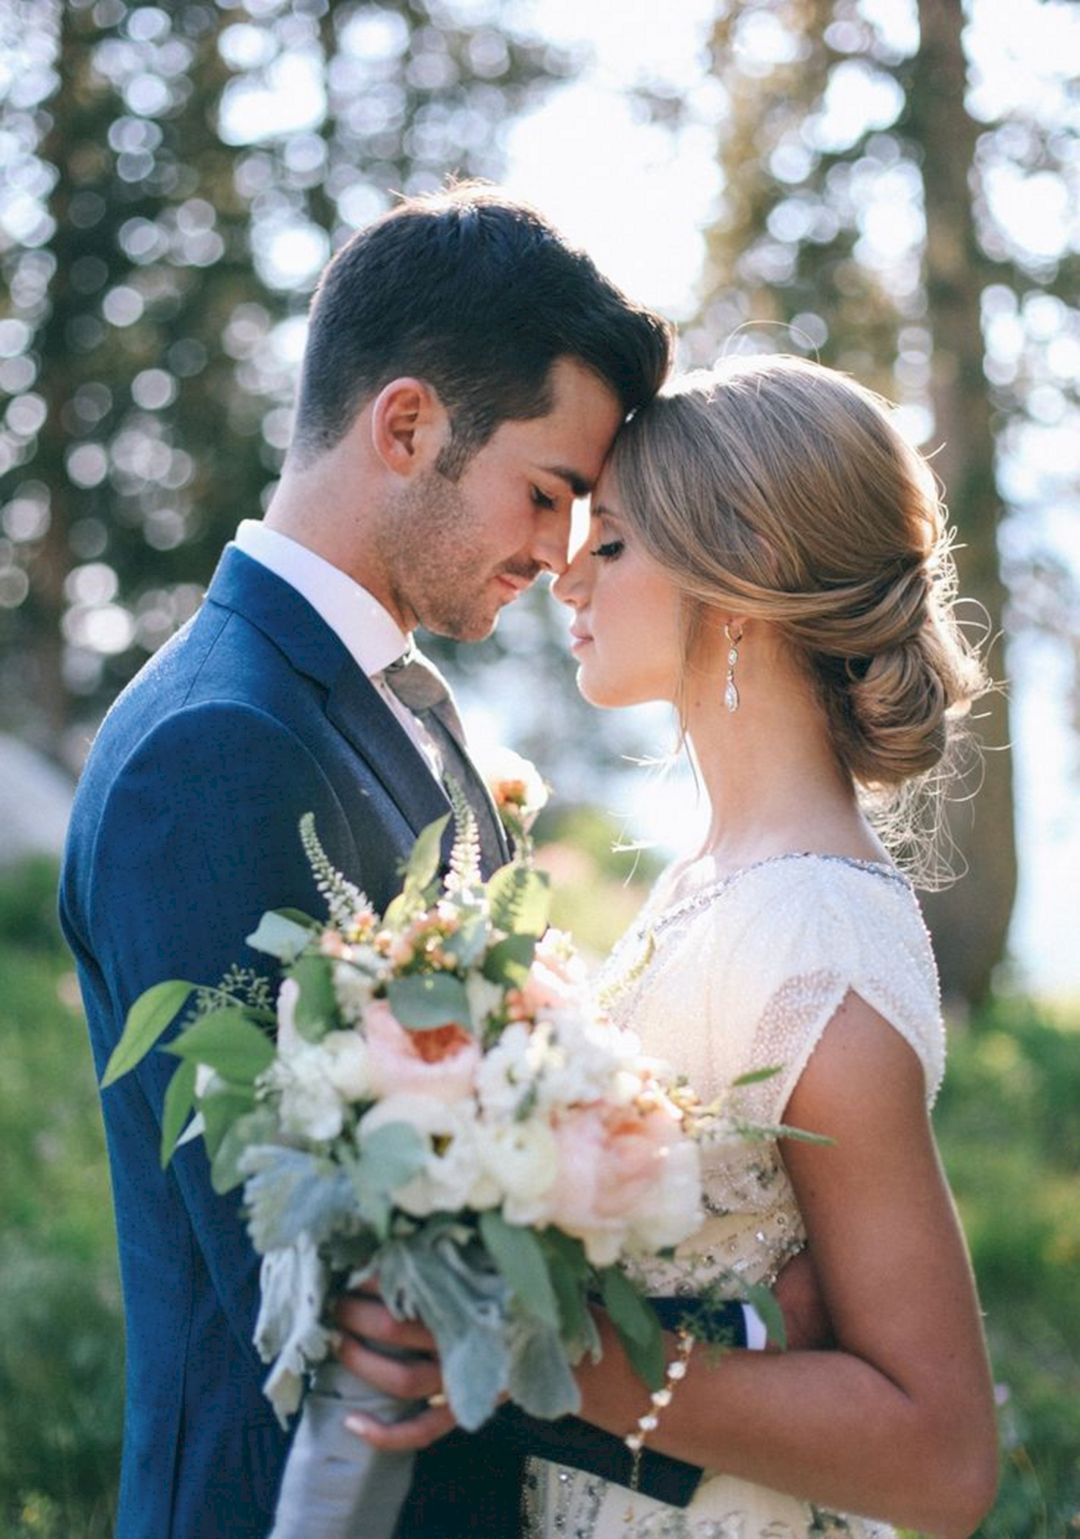 28 Best Awesome Brides Photography Ideas For Wedding Inspiration #bridepictures